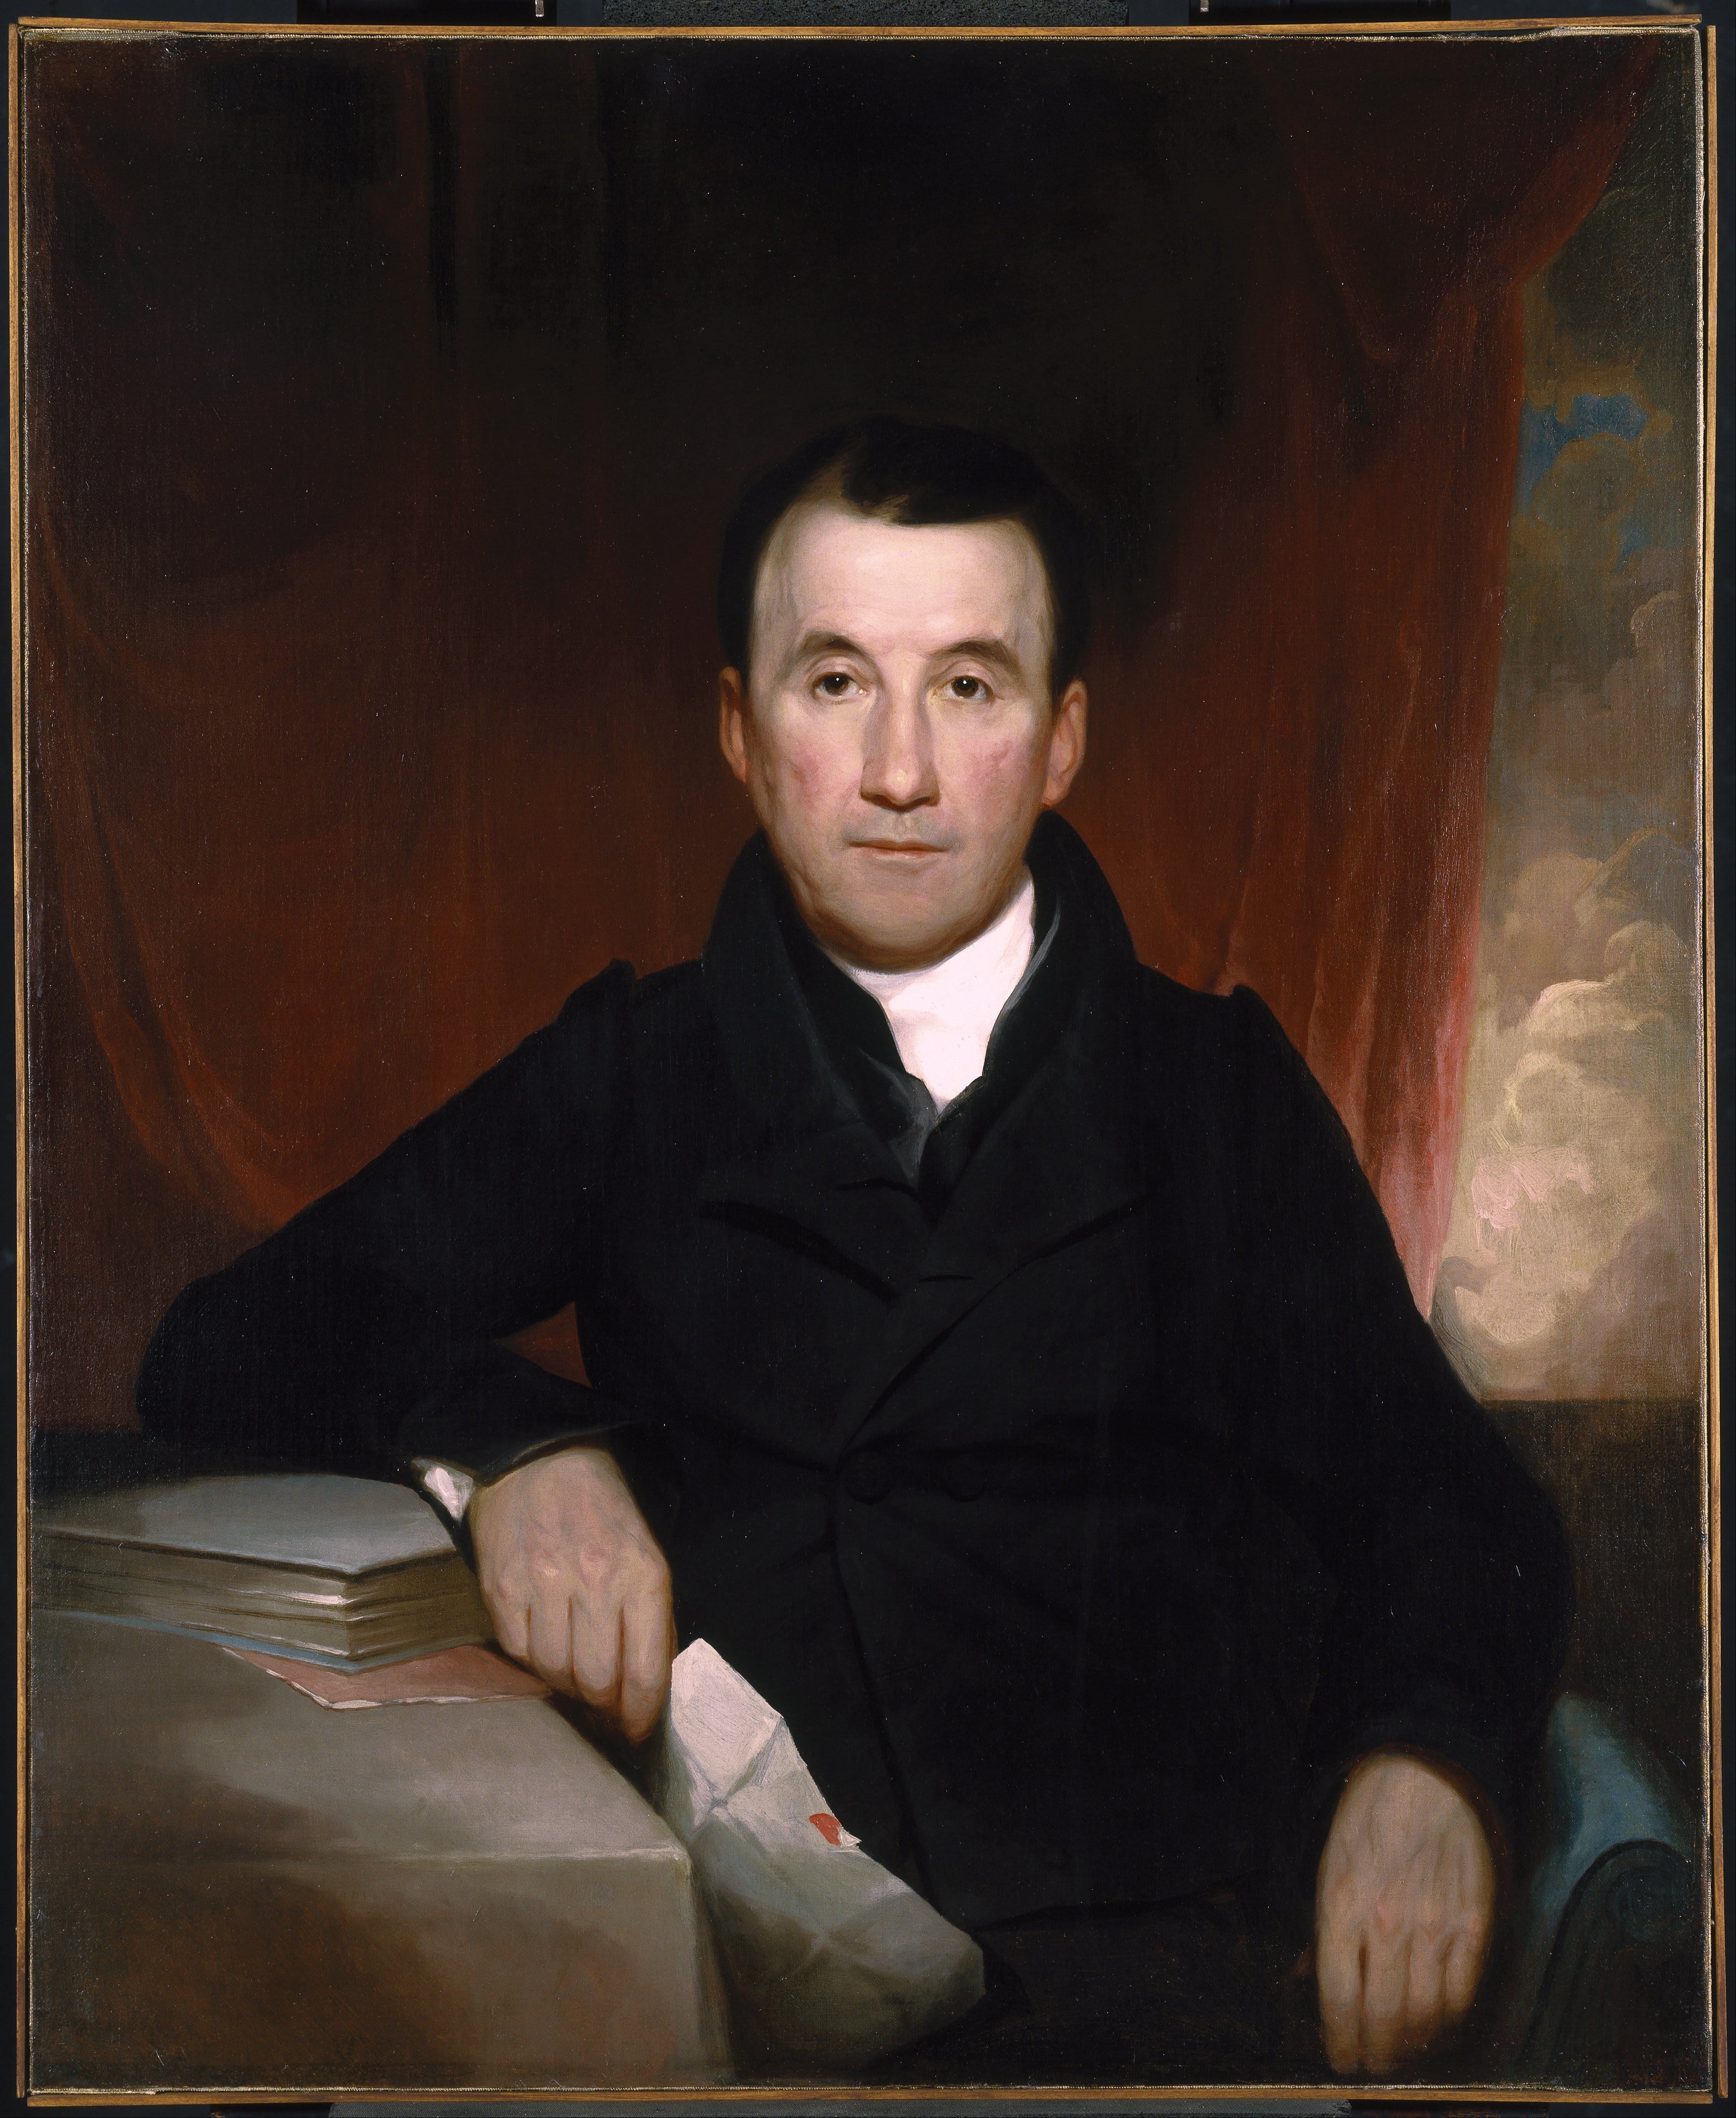 a biography of samuel finley breese morse Inventors recording and samuel finley breese morse (1791-1872) edward lind morse (1857-1923) oil on canvas, 1895, npg7123 national portrait gallery, smithsonian institution, washington, dc transfer from the national museum of american history samuel f b morse, like robert fulton, worked as a portrait.